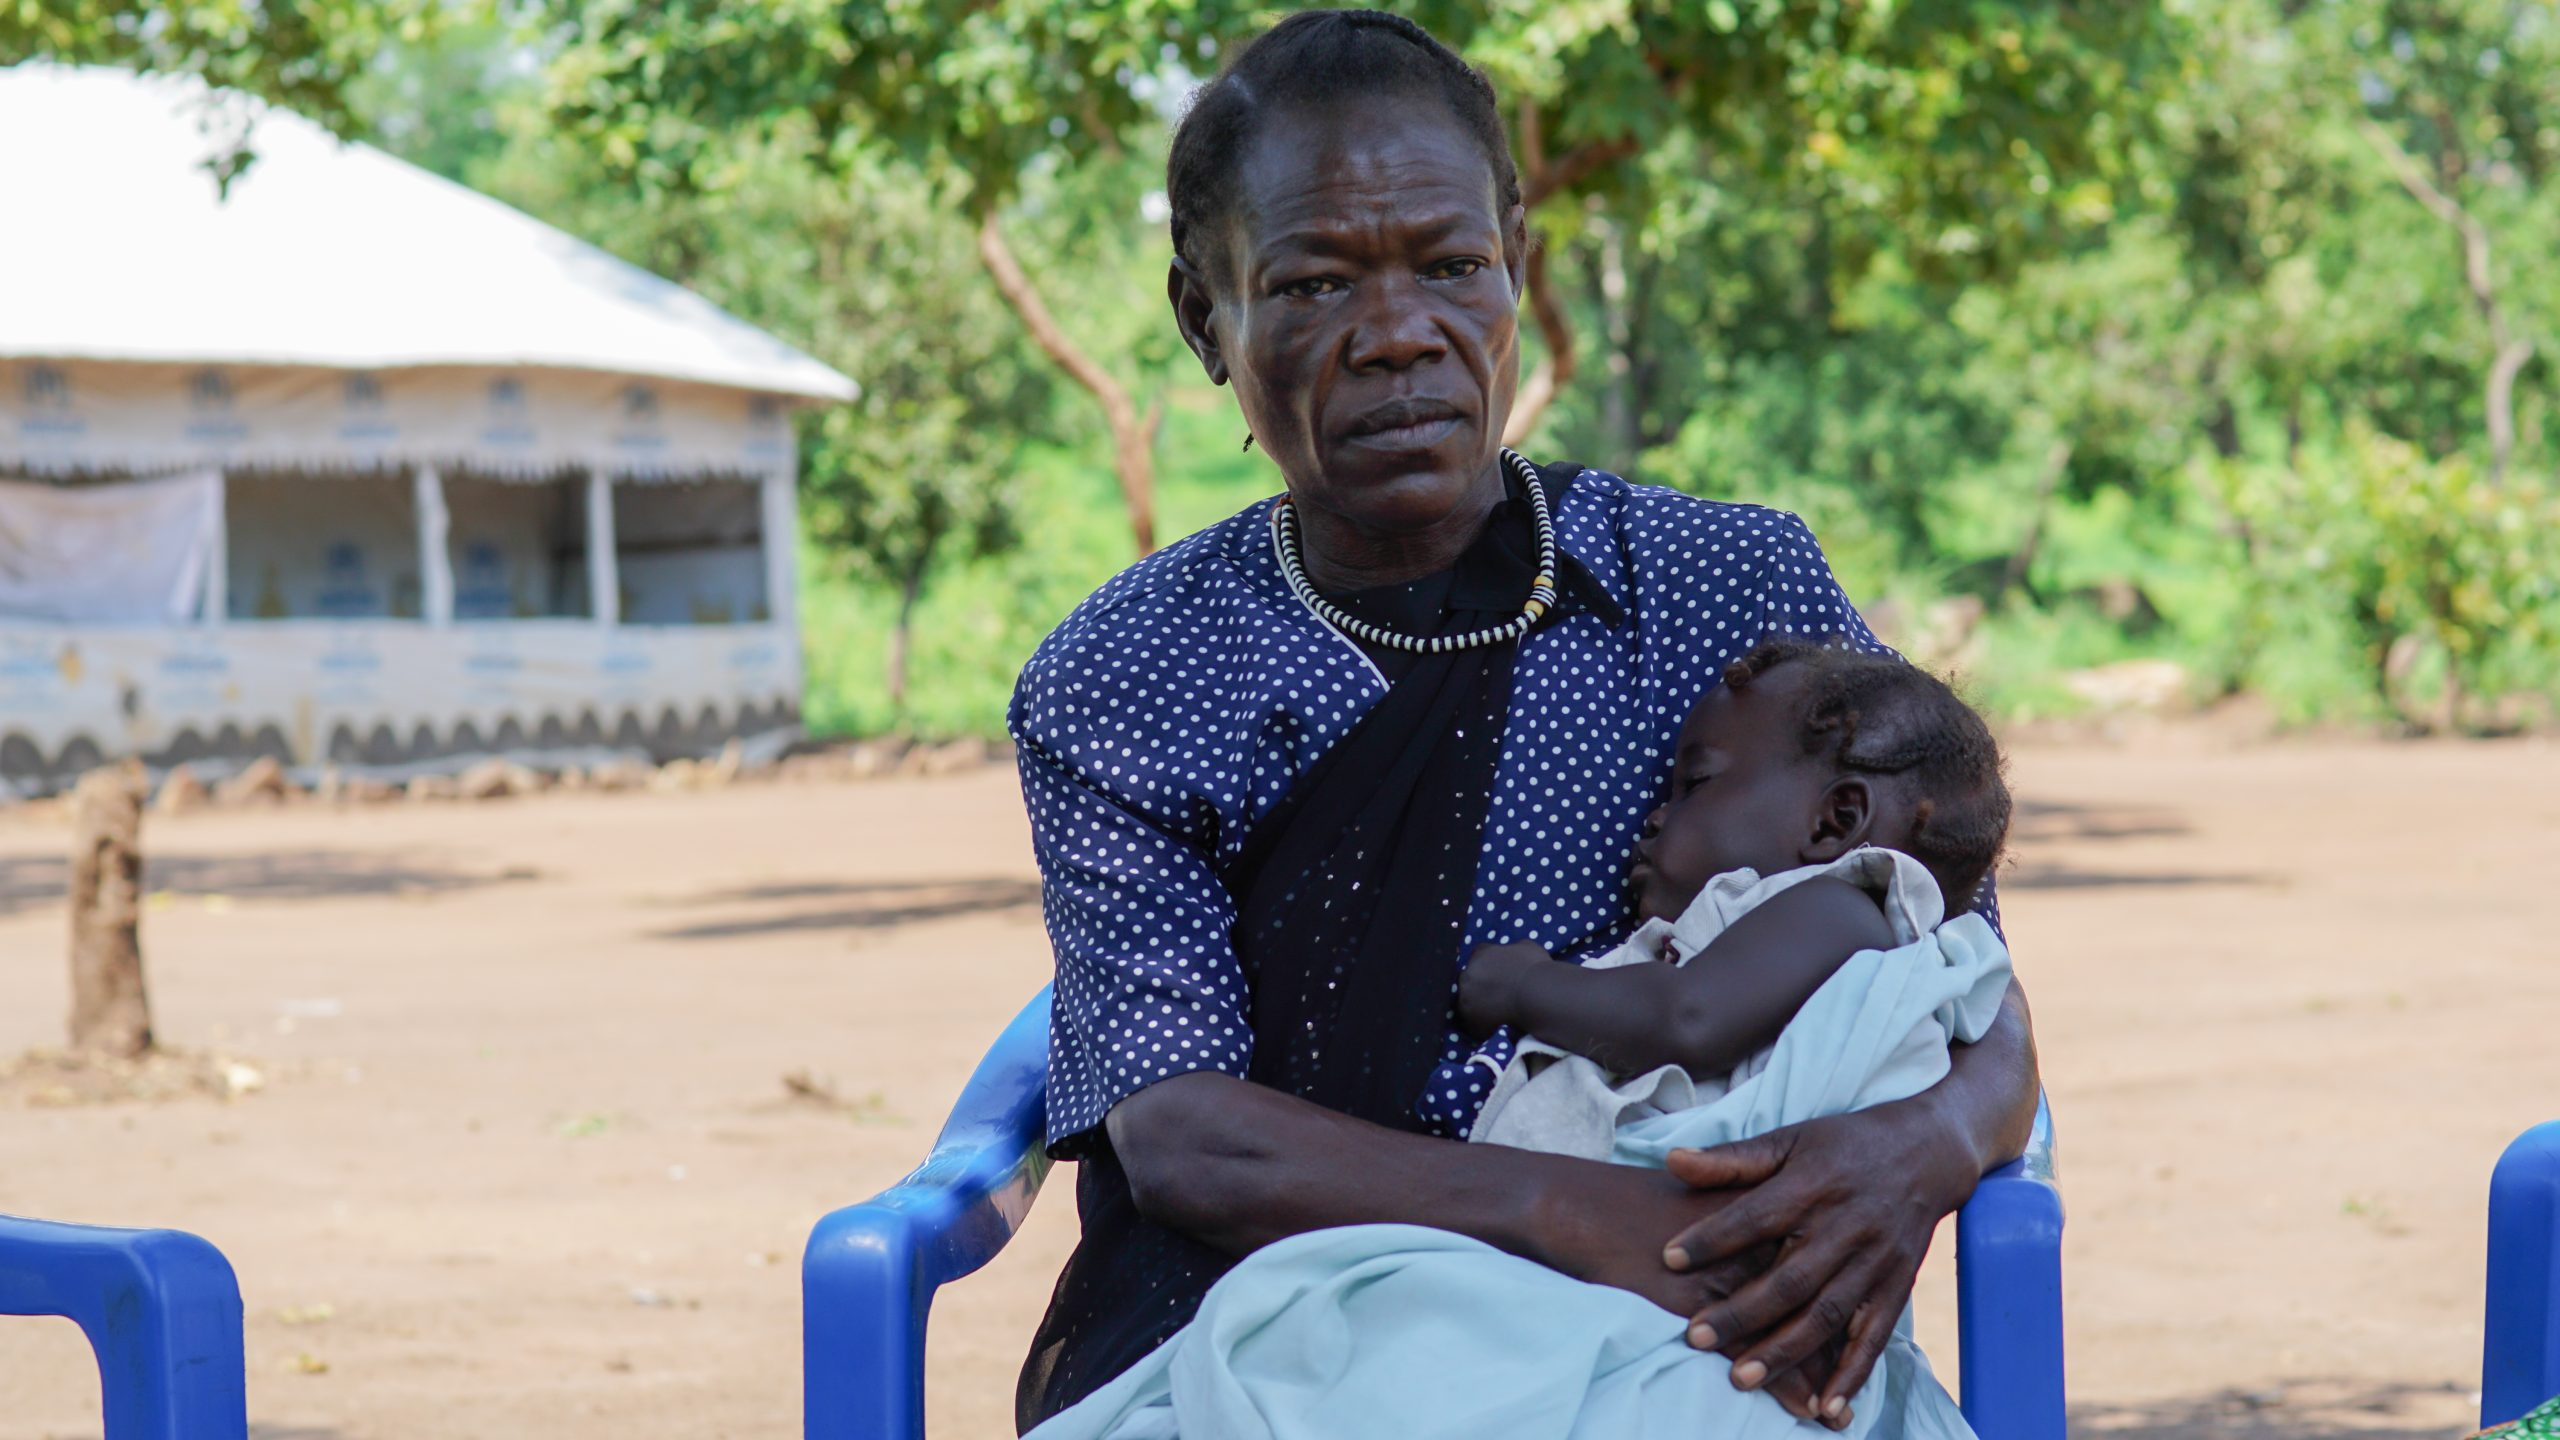 Mariam along with her pregnant daughter and her three children managed to escape the conflict in South Sudan in august 2016. They found refuge at the Bidibidi Refugee Camp in Uganda. Mariam's daughter pass away shortly after having given birth to her fourth child.